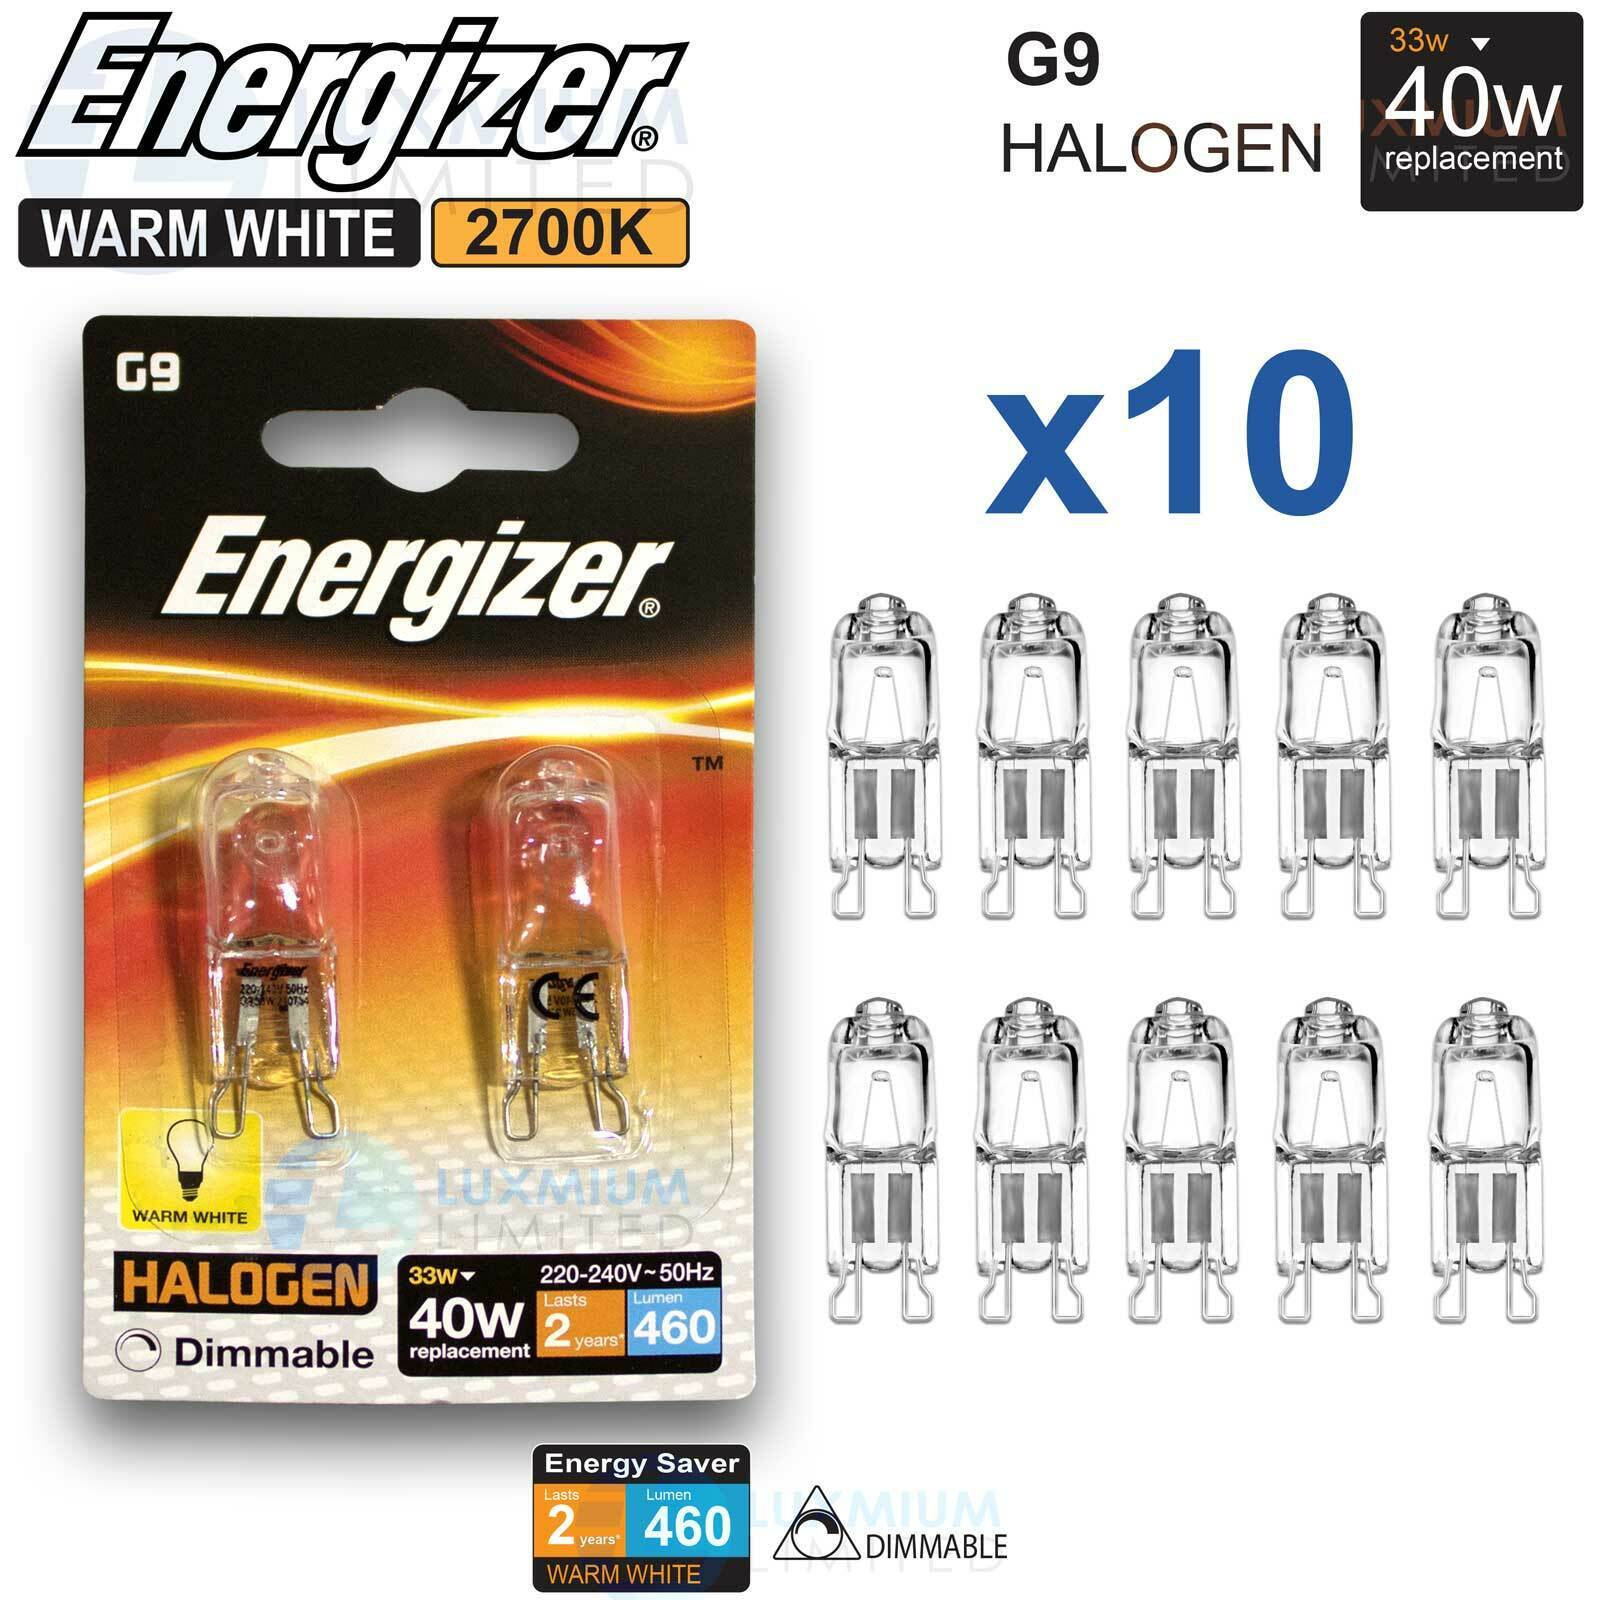 G9 Bulb Lamp Details Warm White X 33w About Saving 460lu 10 Dimmable Energizer Halogen Capsule 0m8Nvnw